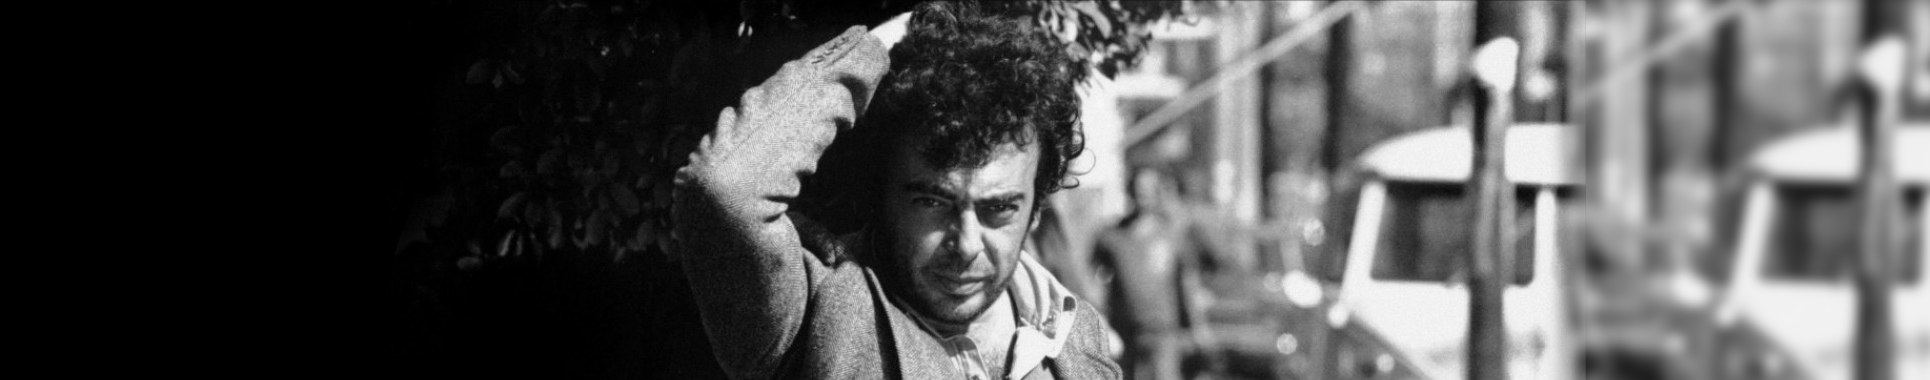 Glauber Rocha Retrospective; the Non-Conformist Voice of Cinema Novo